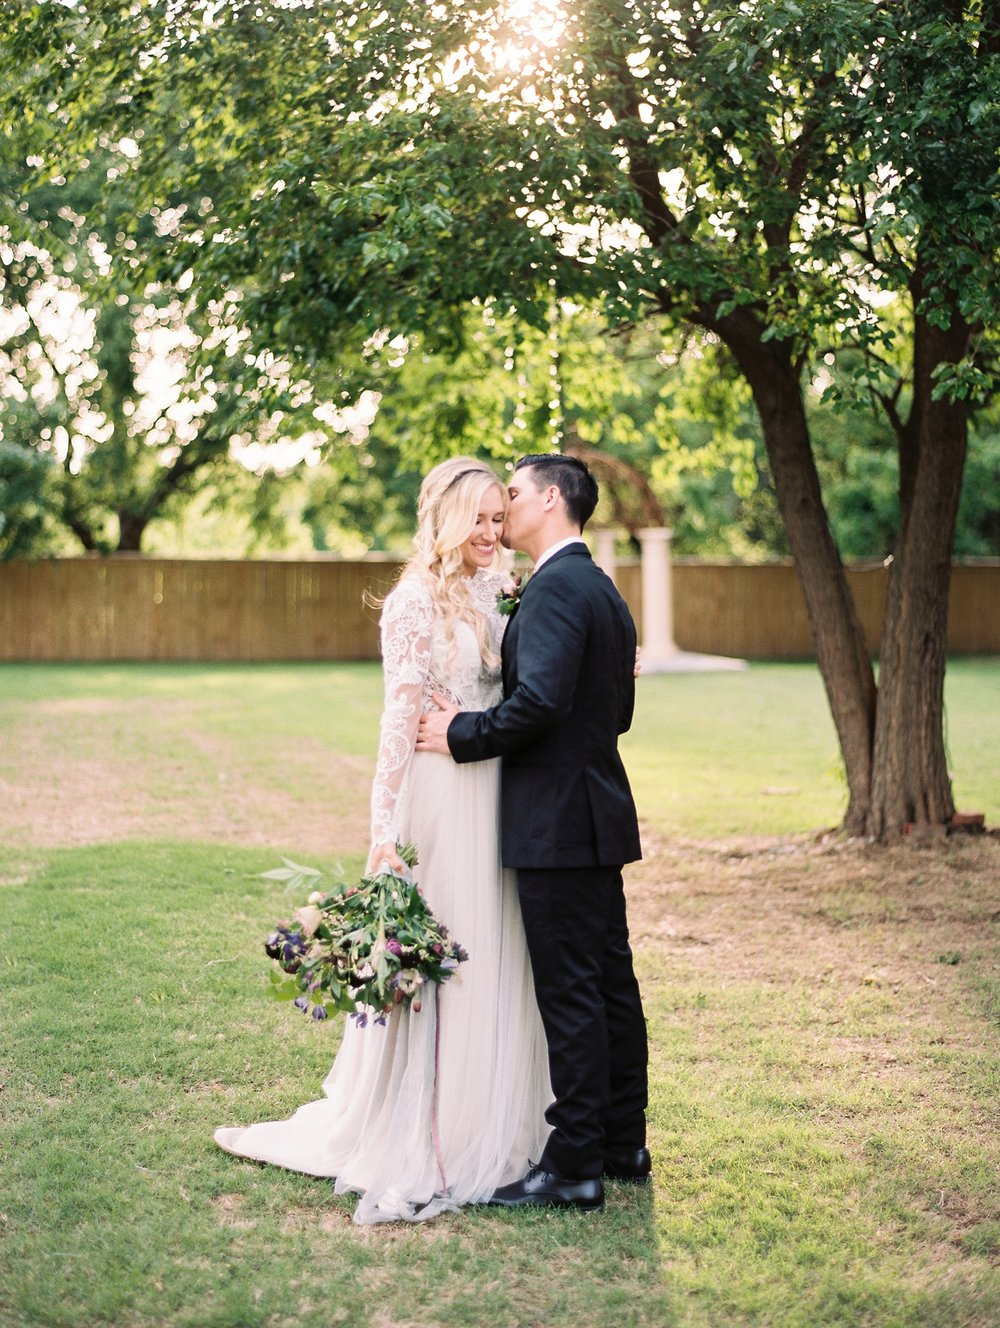 Elope In Style - Jessica Kersey - Northwest Arkansas Wedding Photographer_0237